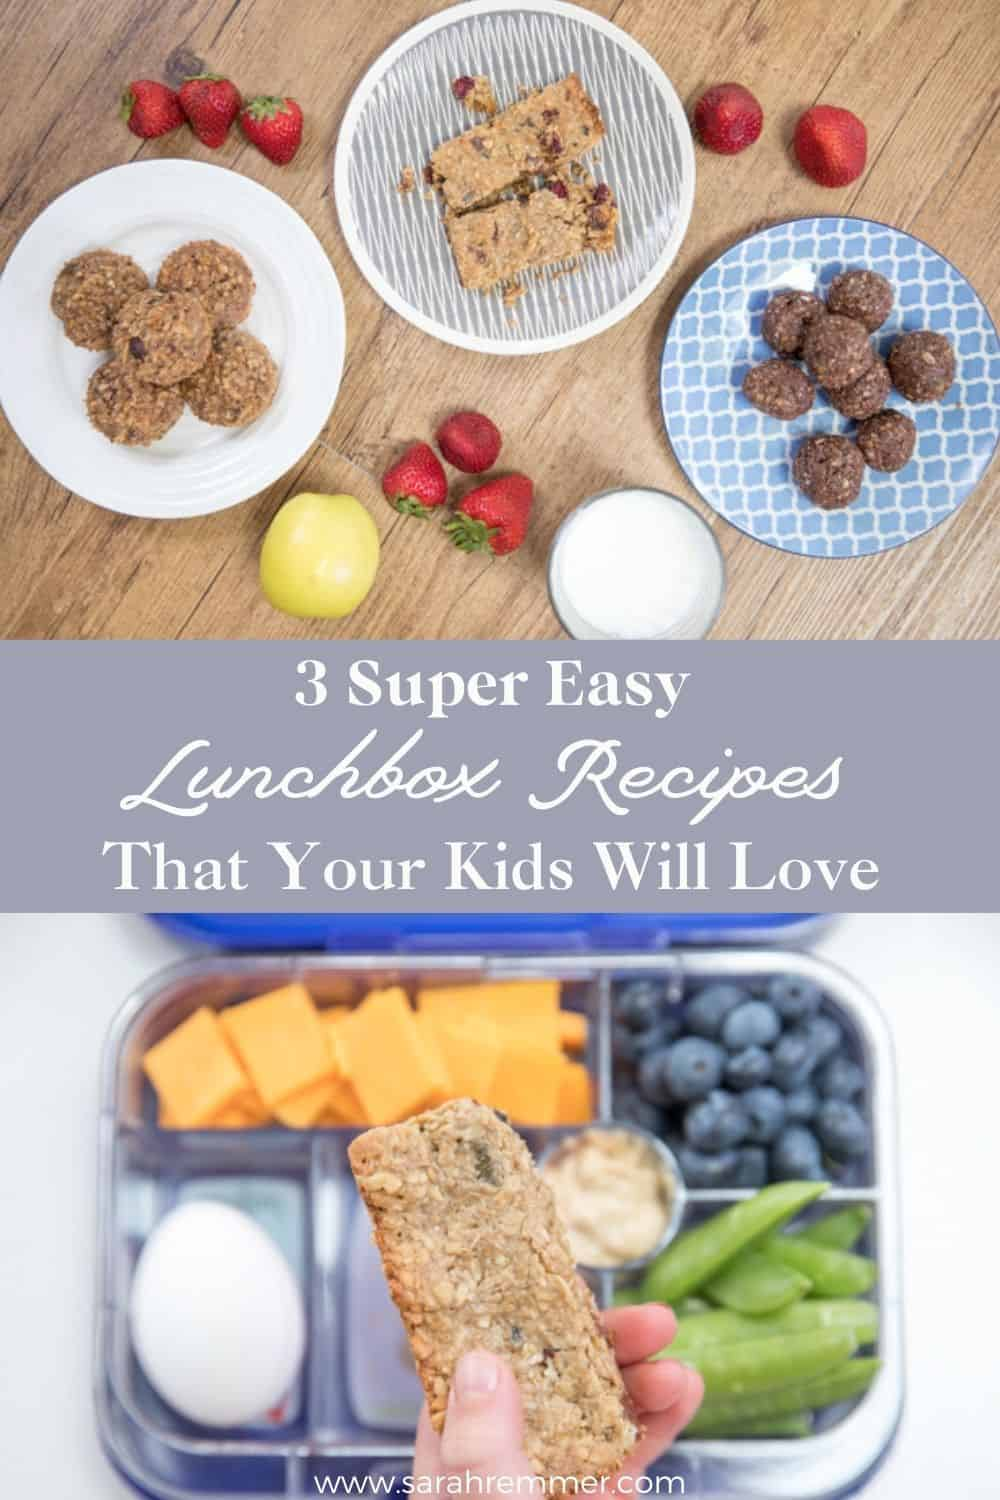 It's almost that time again – back to school! And although many of us are more than ready for our little darlings to head back to class, we aren't super excited about packing lunches every day. Or is that just me (**I doubt it!**)?